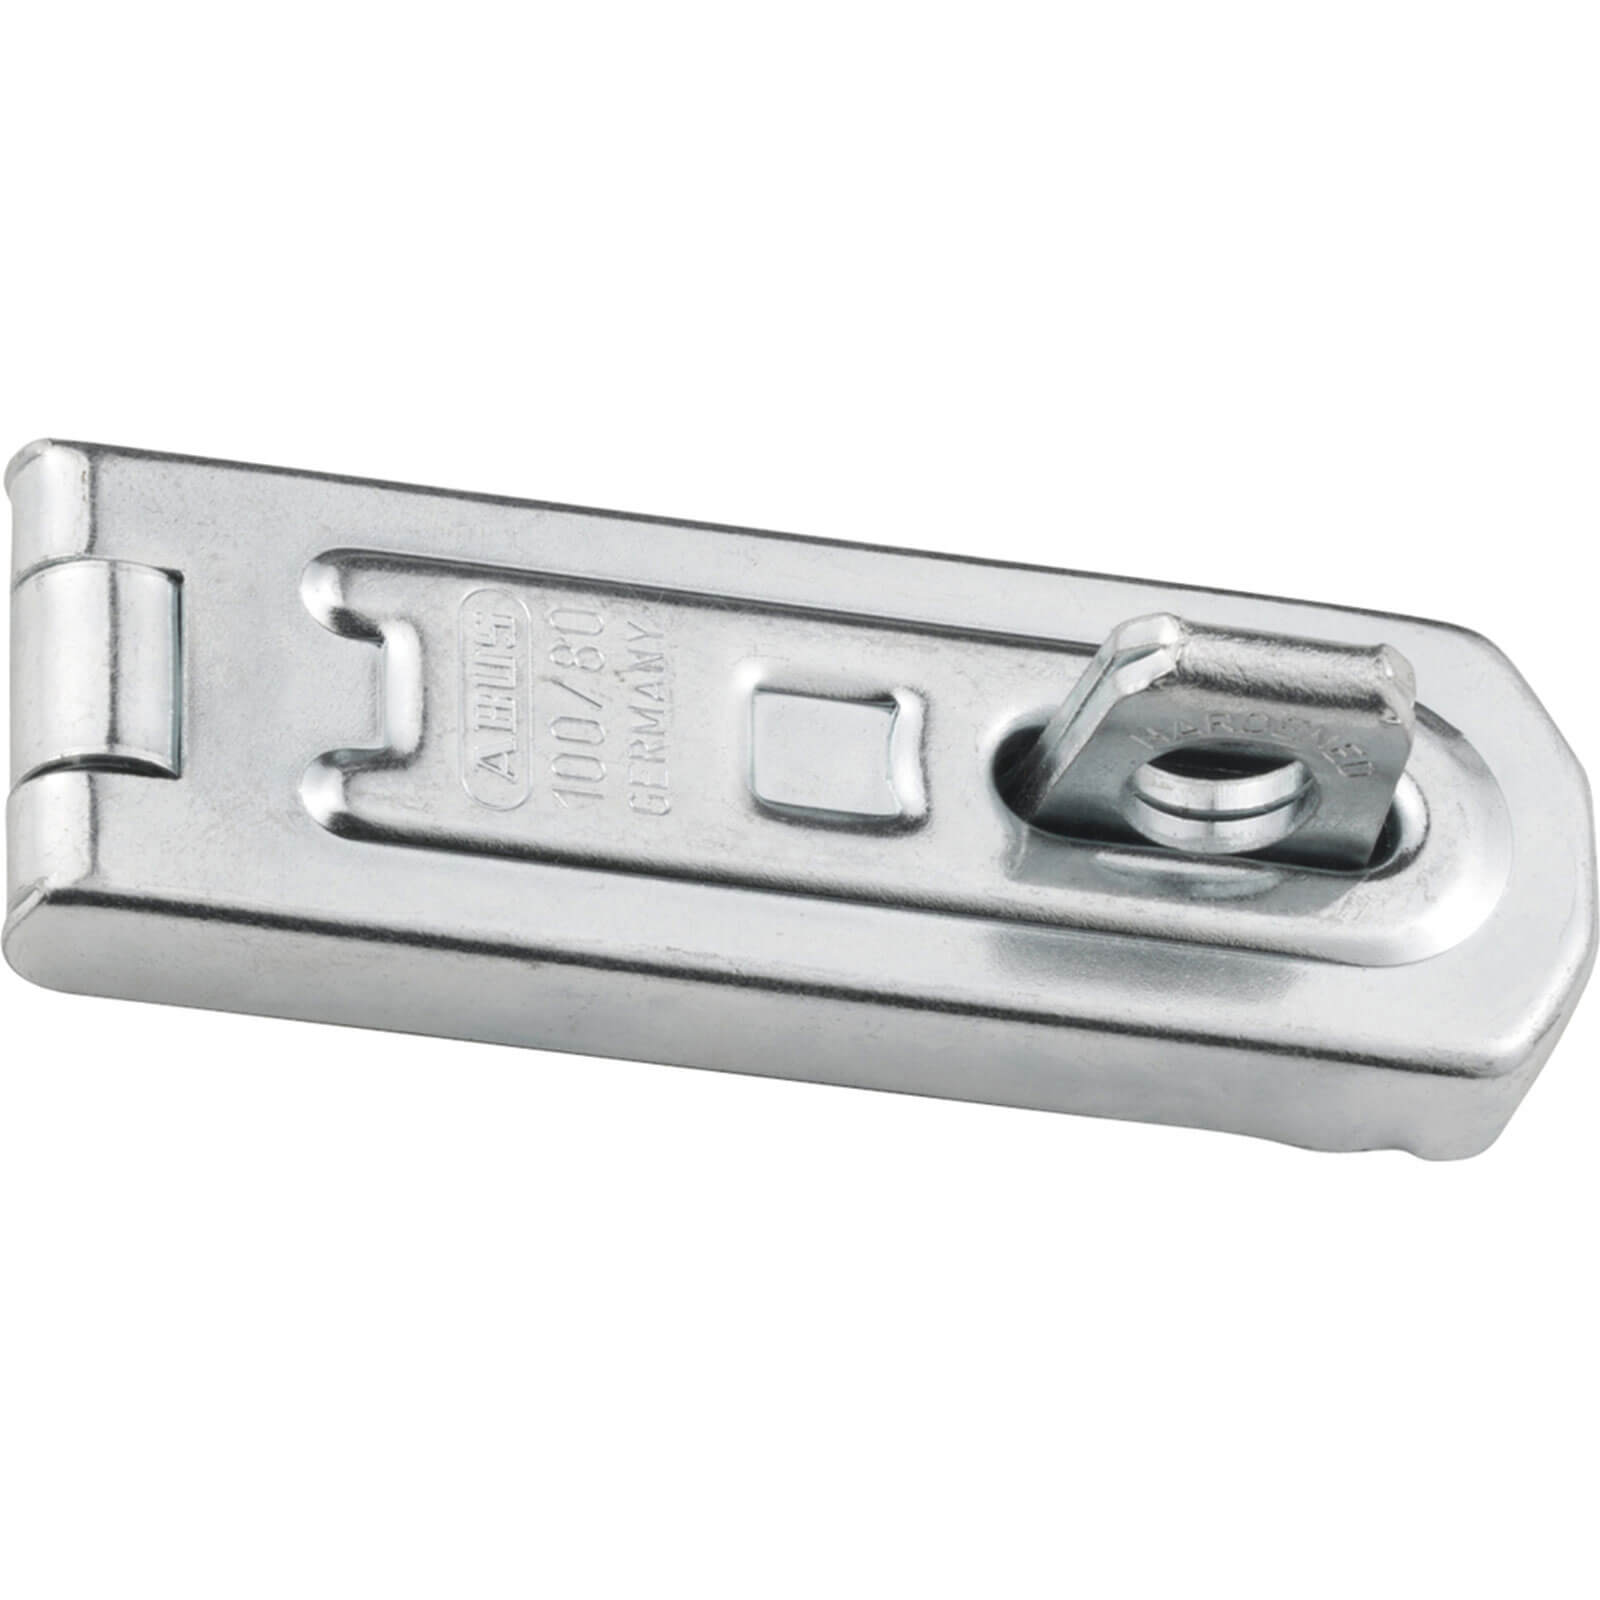 Abus 100 Series Tradition Hasp & Staple 80mm